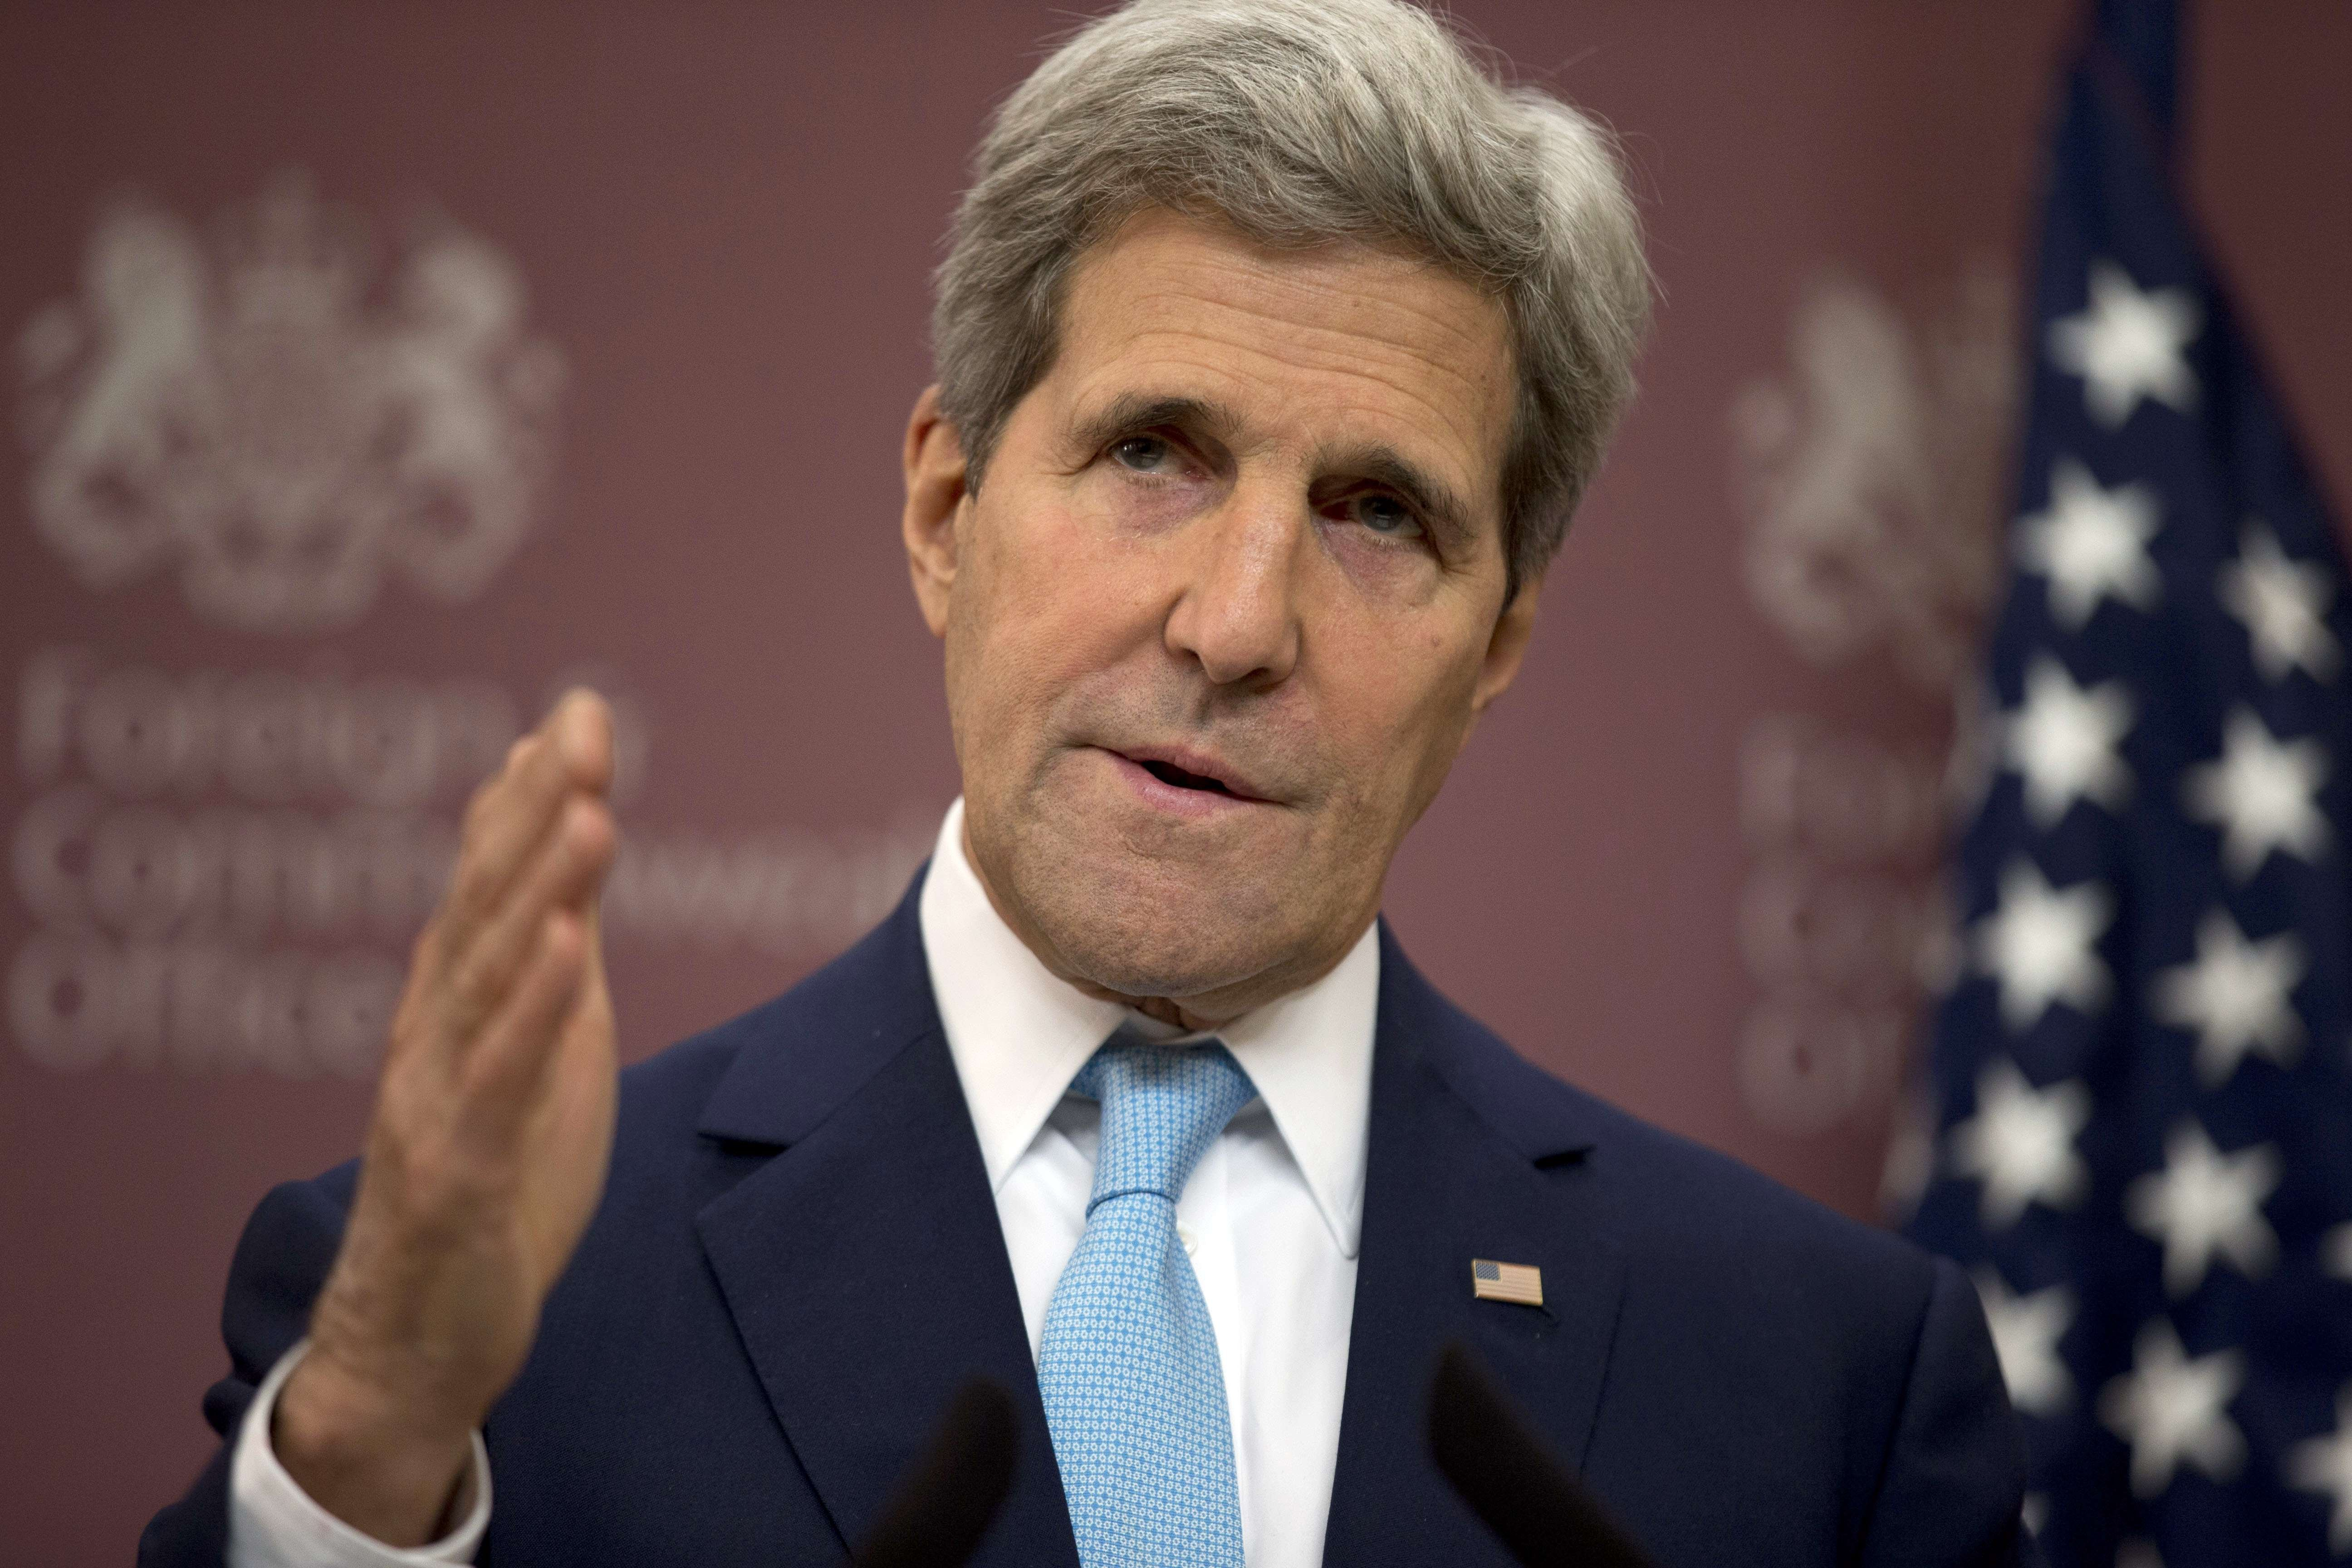 U.S. Secretary of State John Kerry speaks during a press conference following the Friends of Syria meeting in London on May 15, 2014.